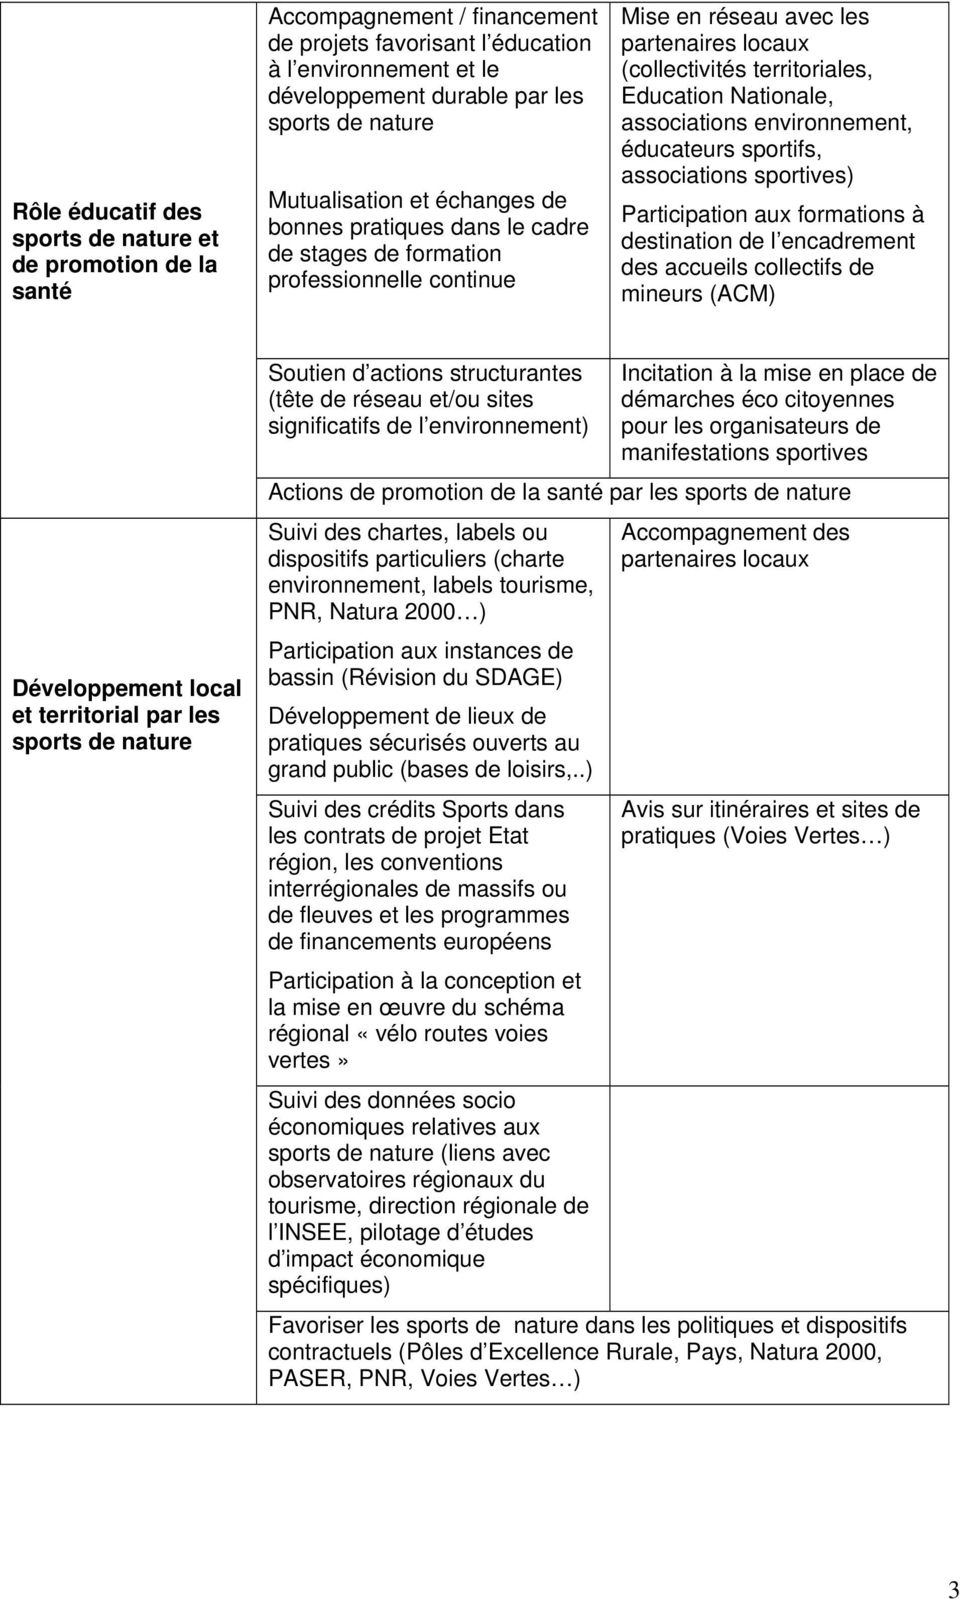 Nationale, associations environnement, éducateurs sportifs, associations sportives) Participation aux formations à destination de l encadrement des accueils collectifs de mineurs (ACM) Développement